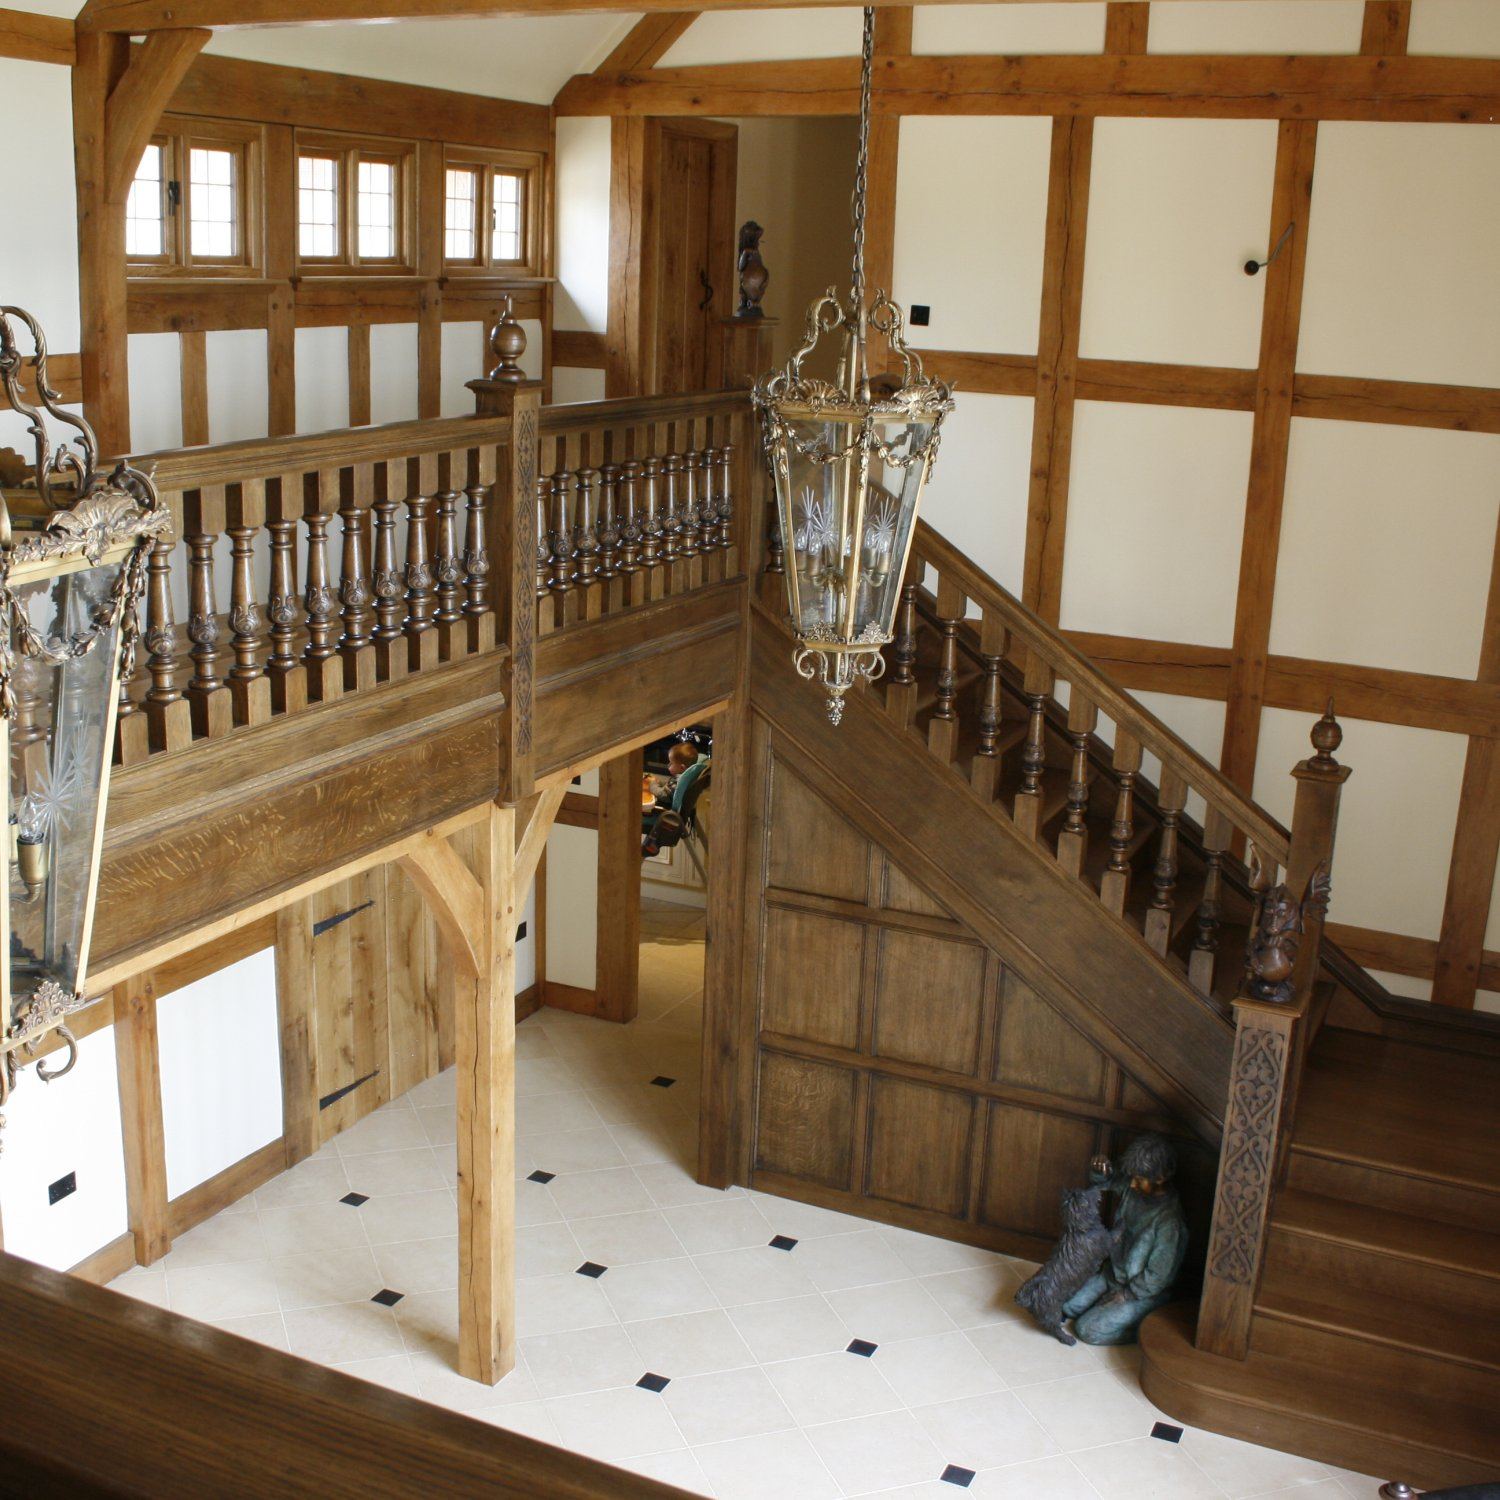 Bespoke oak gallery and staircase